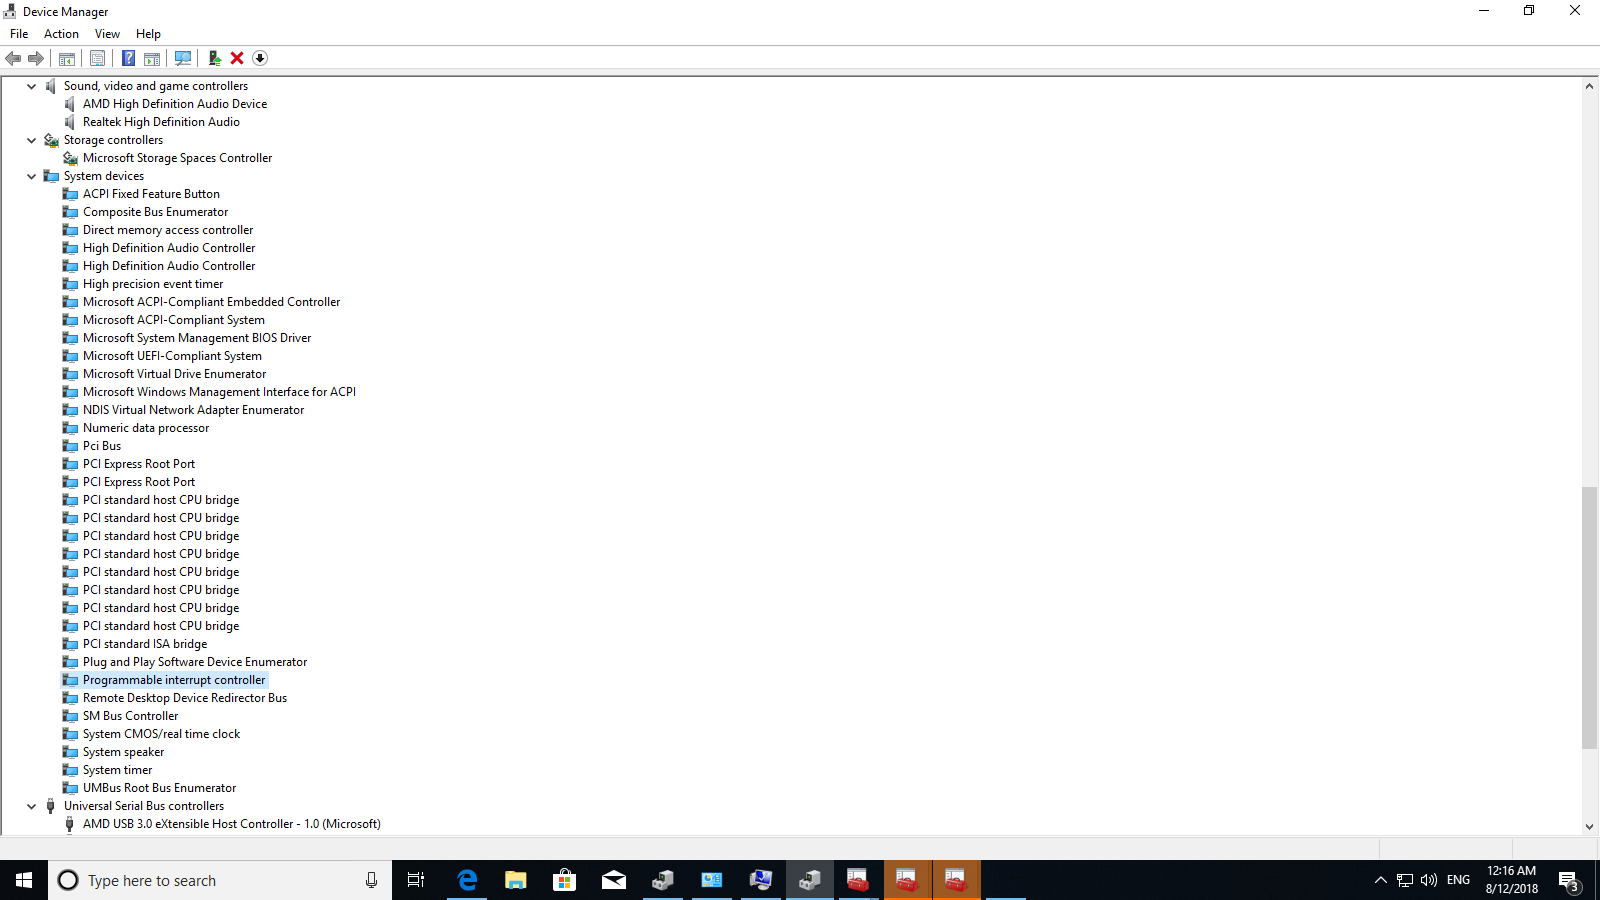 Someone has created a network on my personal PC without my permission. 72650465-f516-4764-b9f3-05c558954e13?upload=true.png